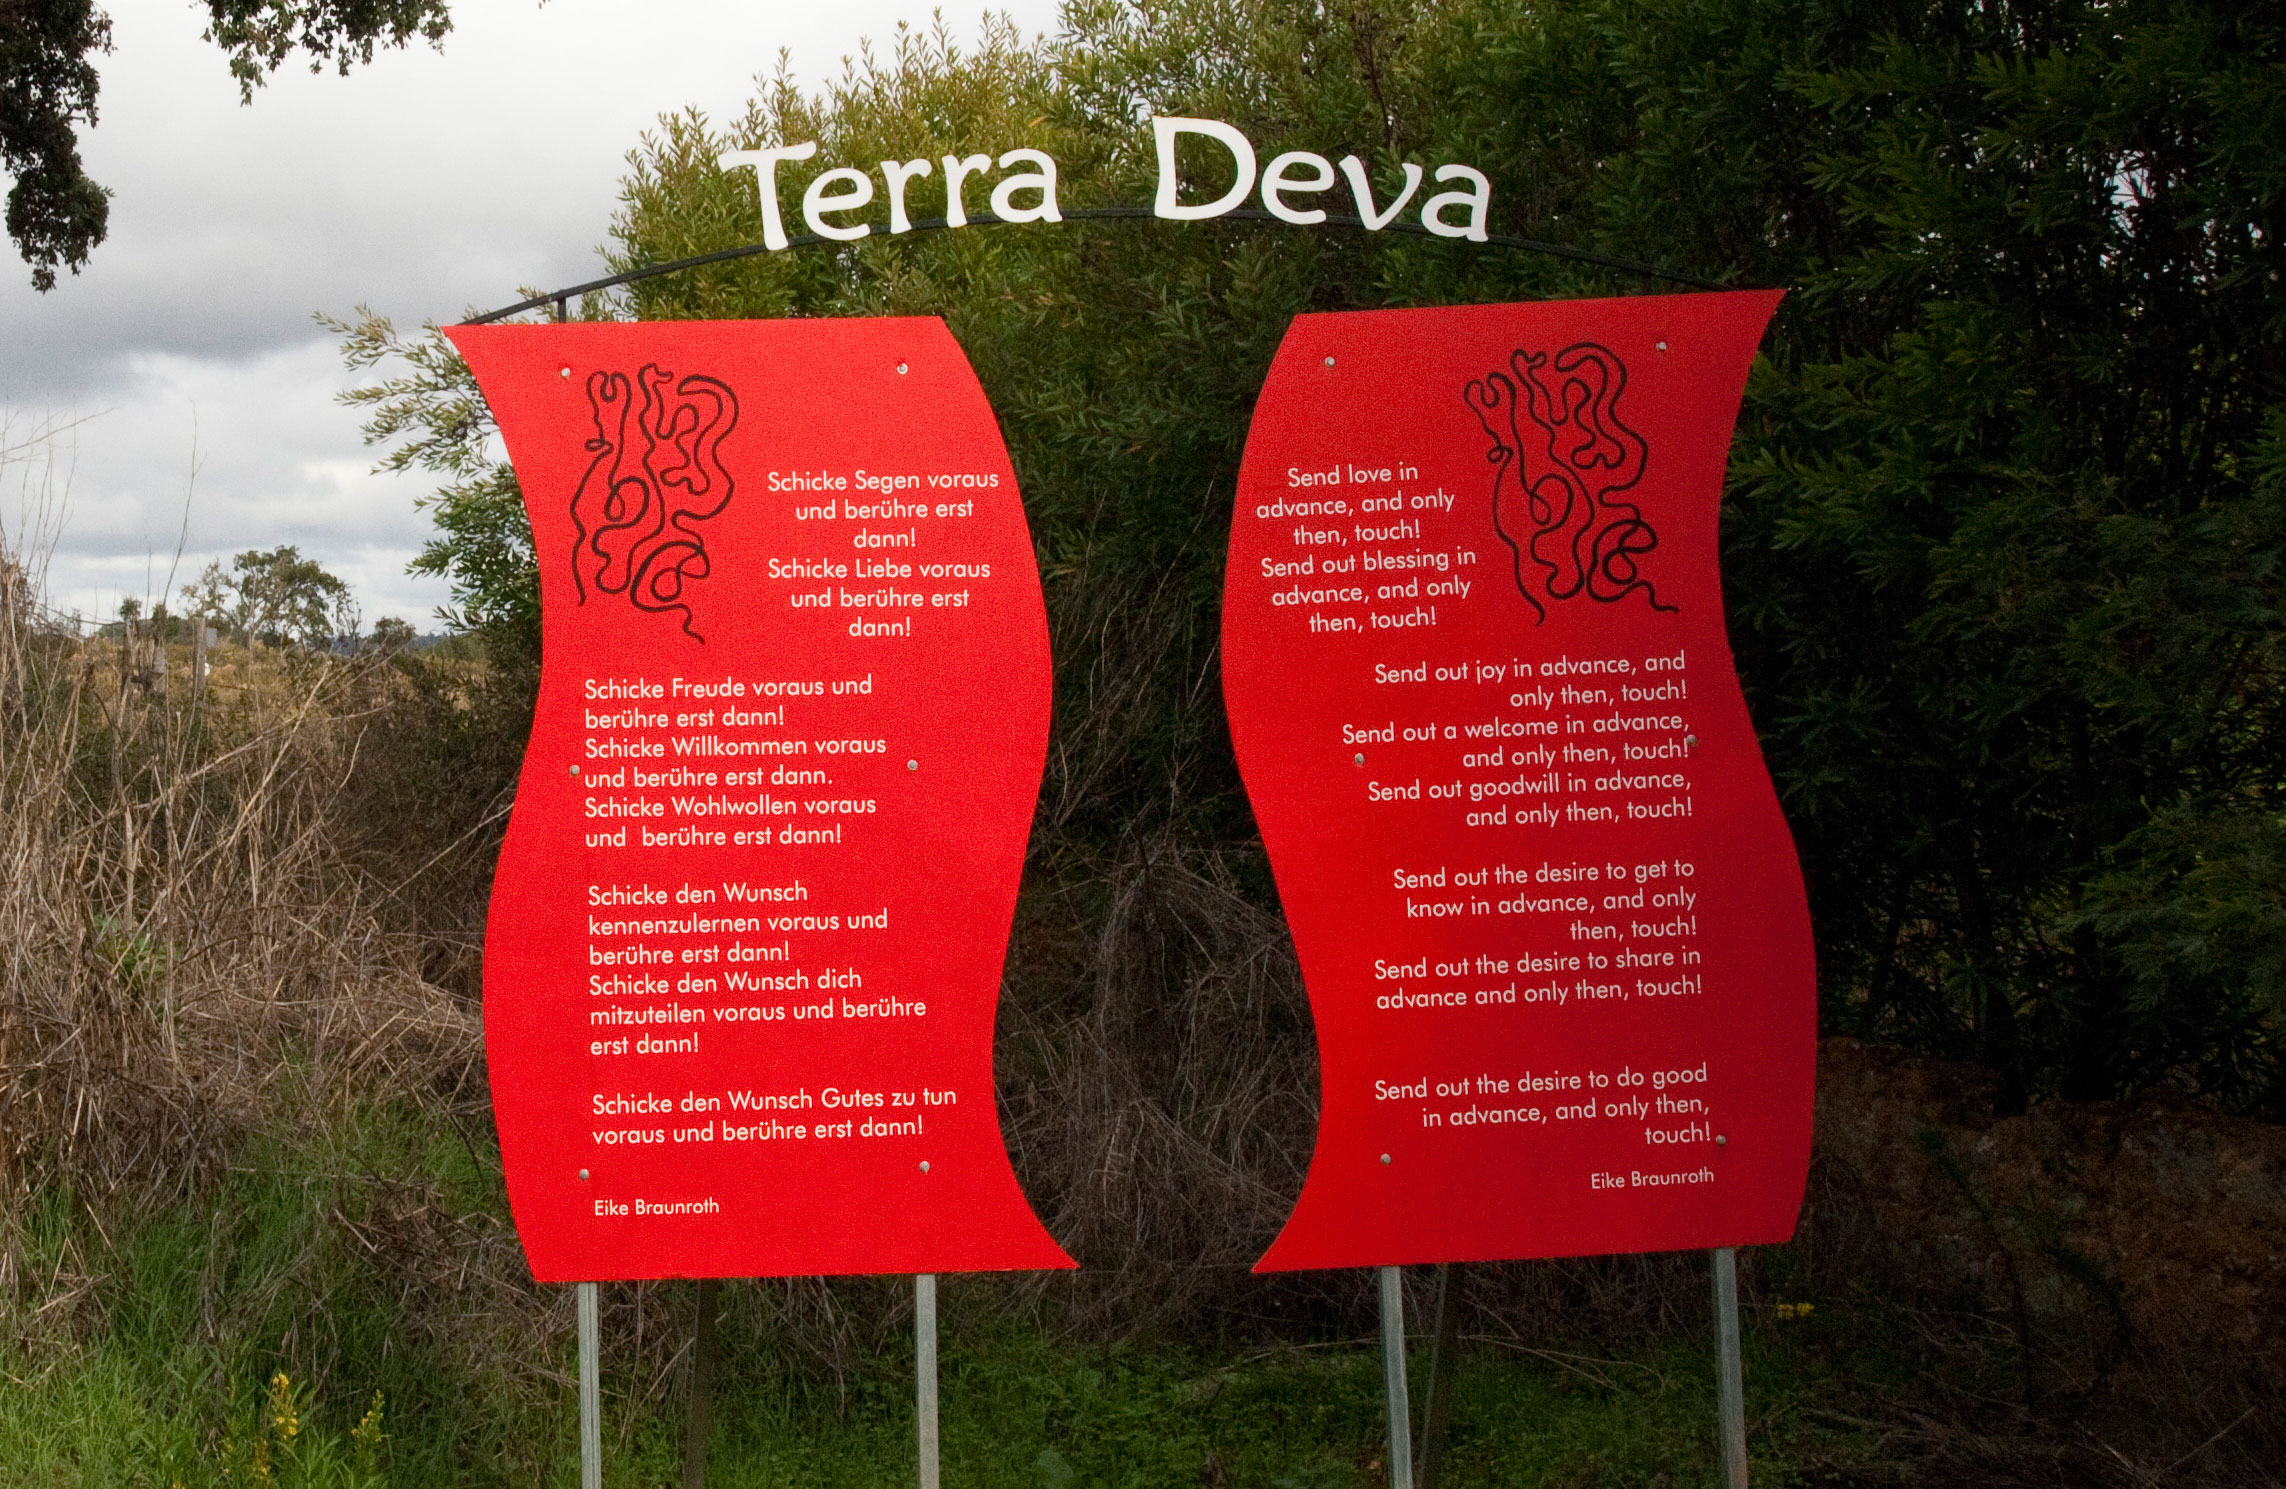 Terra Deva Entrance - Send Love Ahead and Touch Only Then